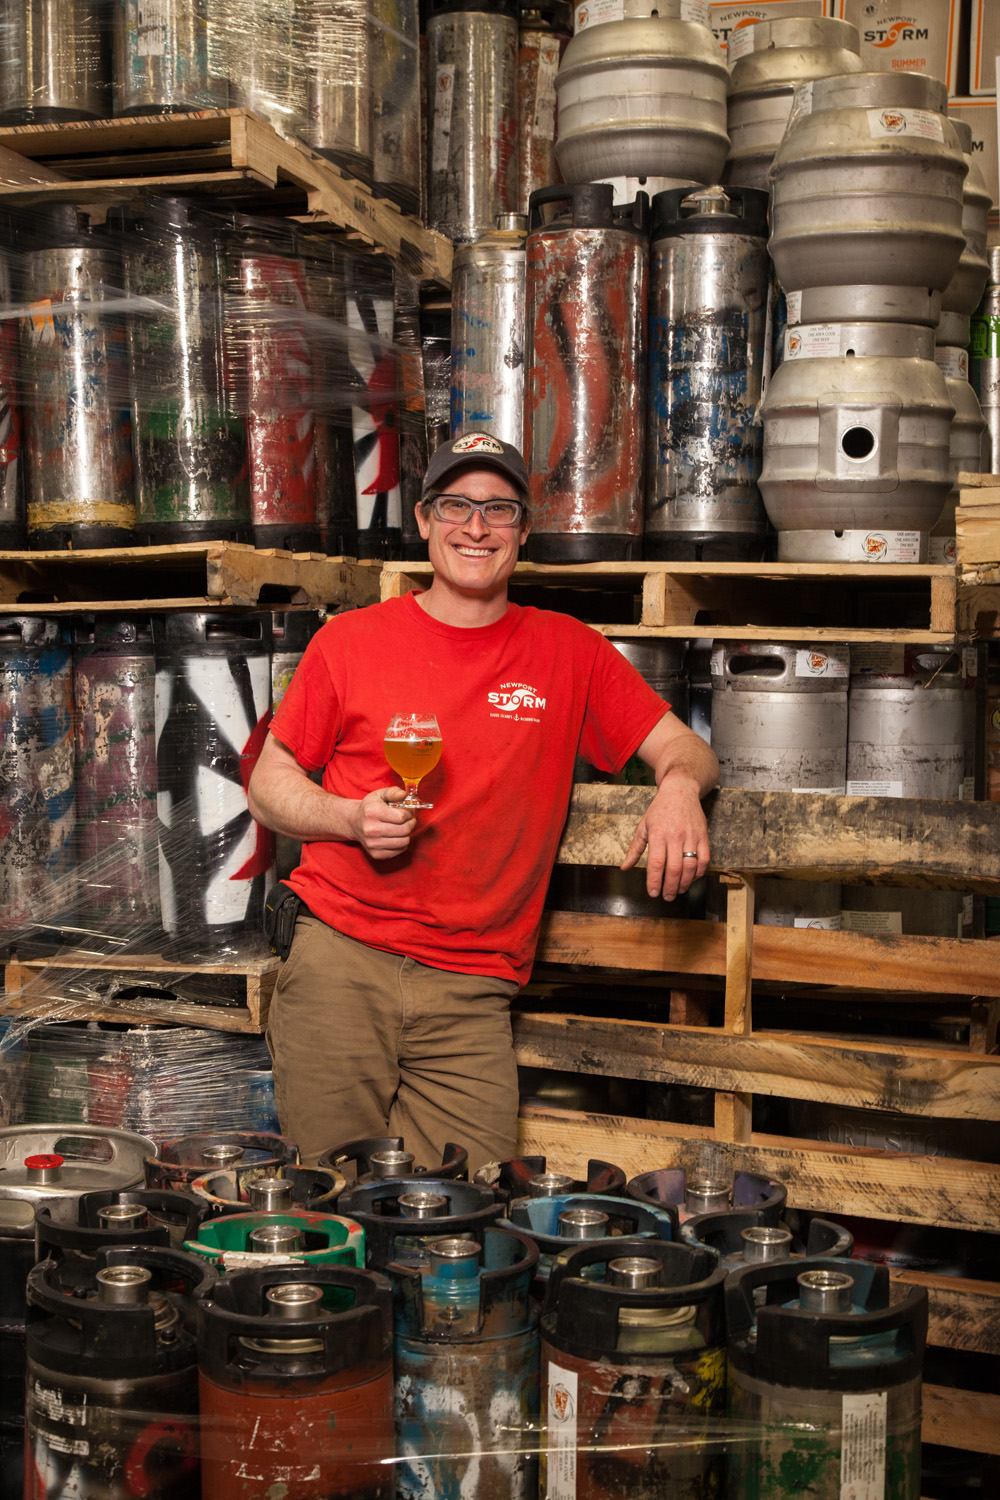 Derek Luke, Brewmaster at Newport Storm Brewing Co. Newport, RI Established in 1999